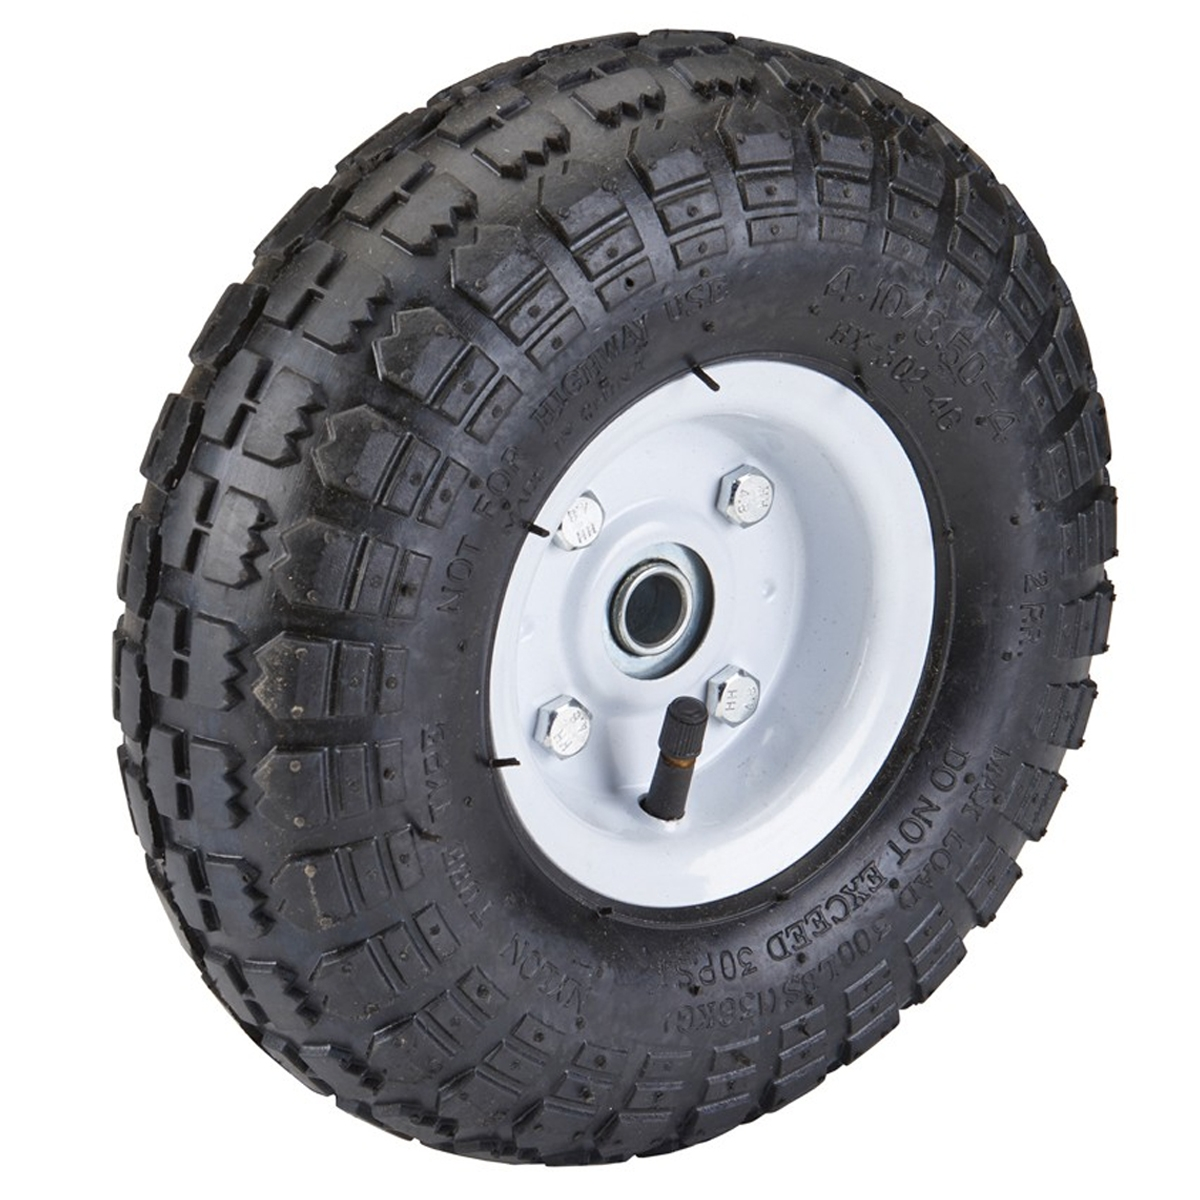 10 in pneumatic tire with white hub